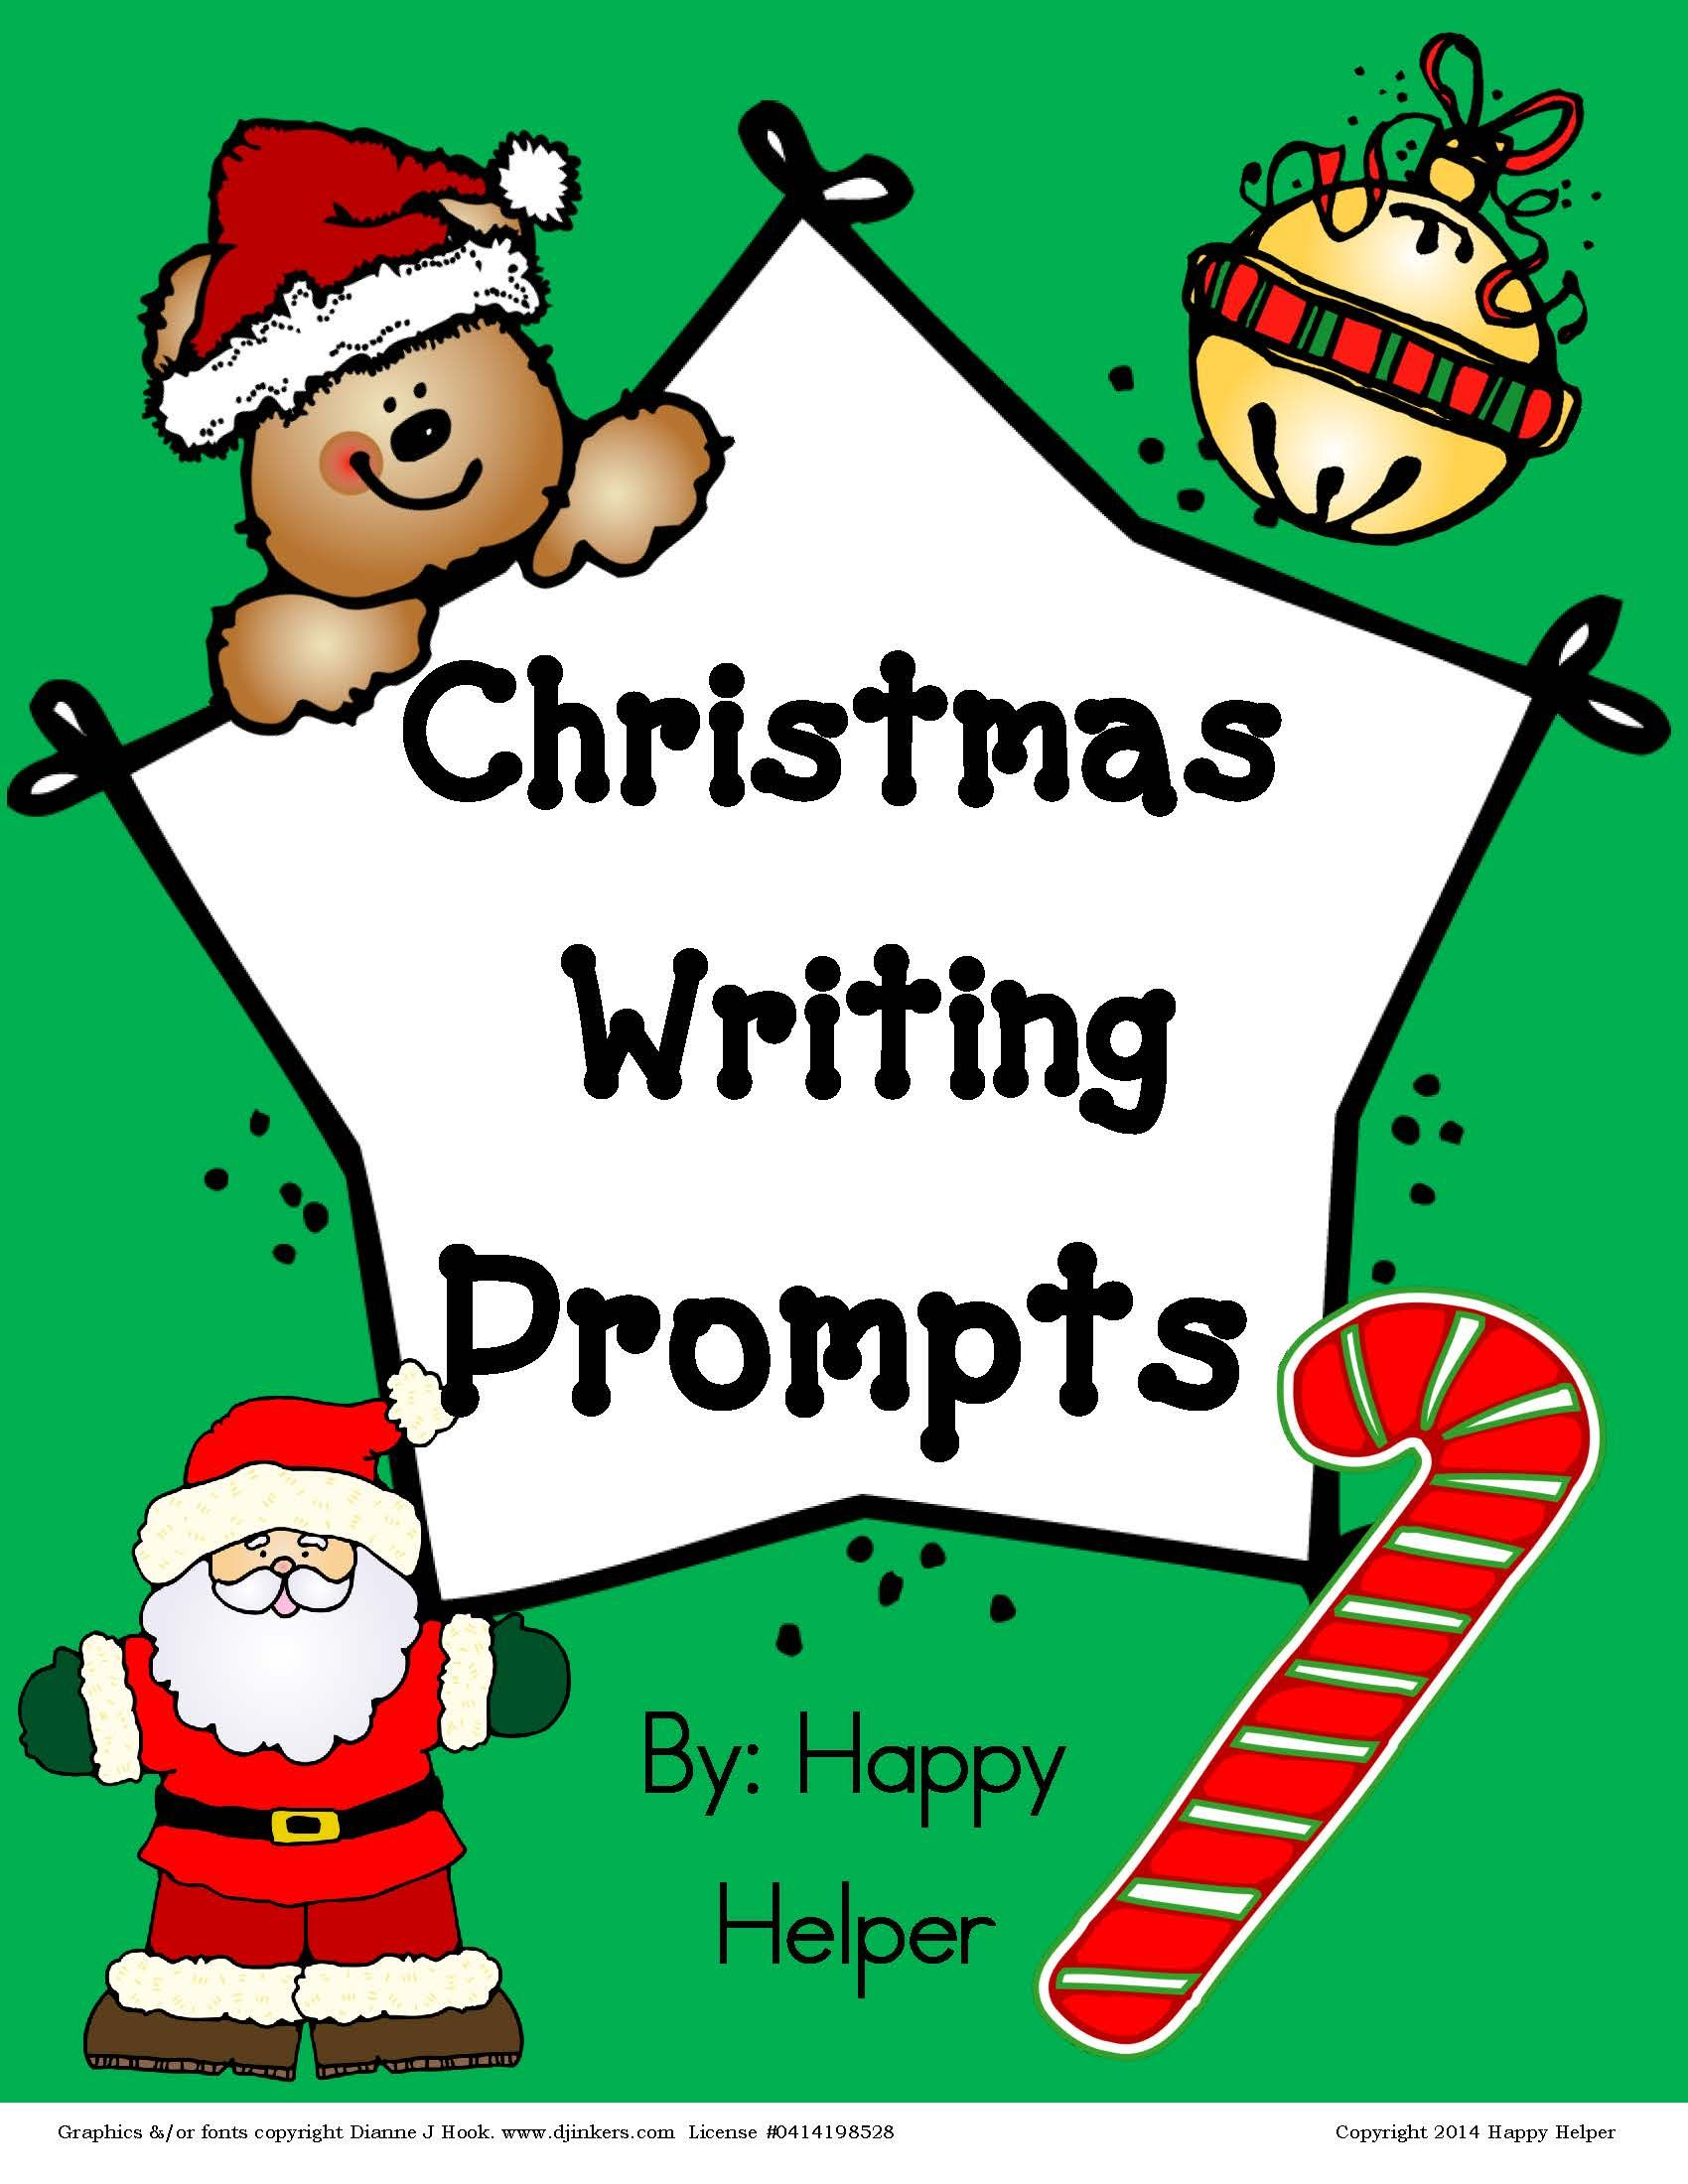 Free Writing Prompts For Christmas Students Love To Answer These Fun Prompts Writing Pages